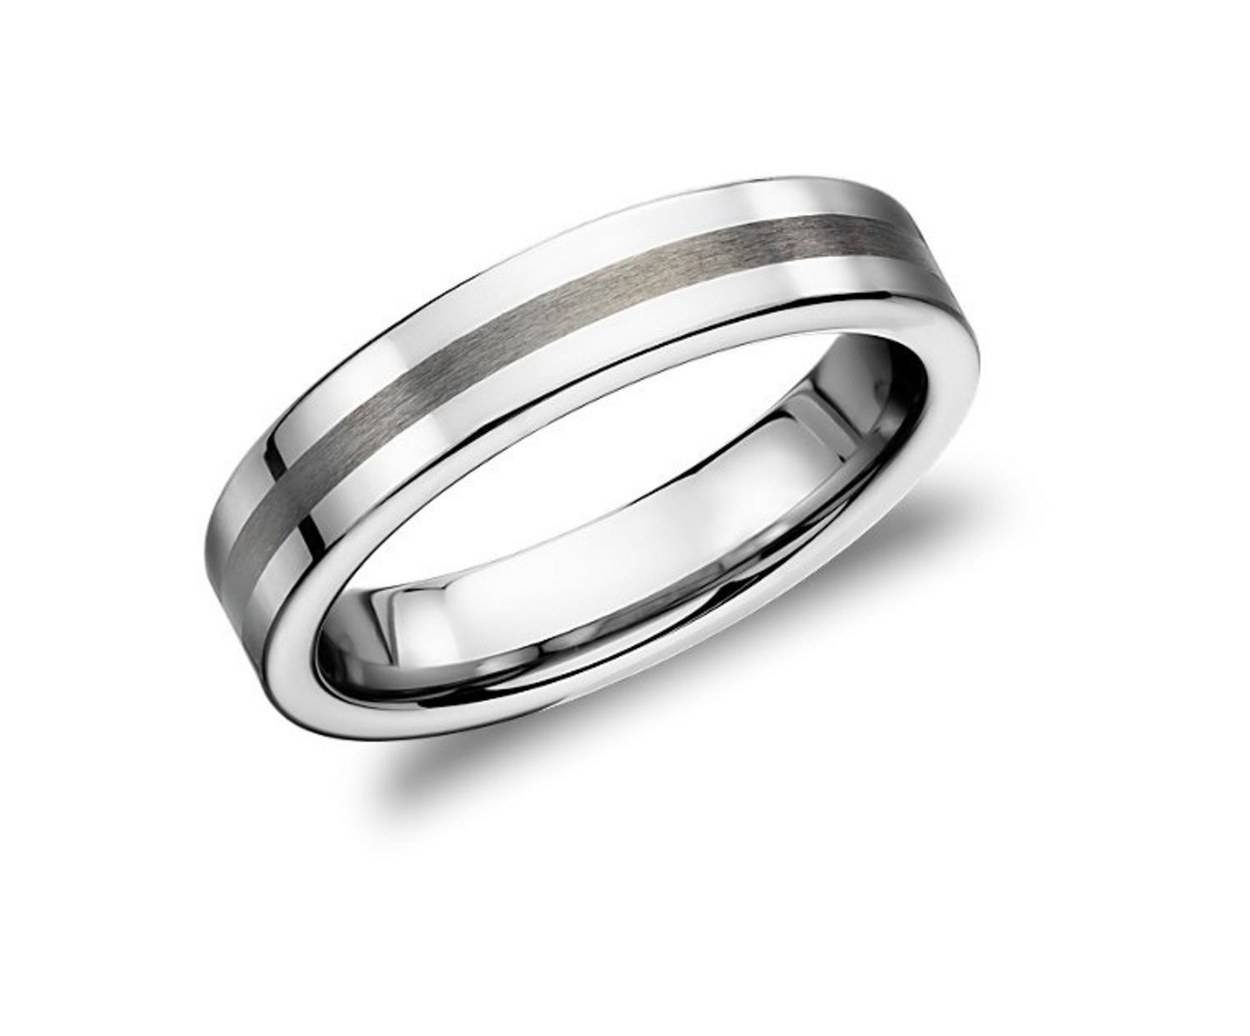 15 Men's Wedding Bands Your Groom Won't Want To Take Off | Glamour Intended For Men's Wedding Bands Metals (View 9 of 15)